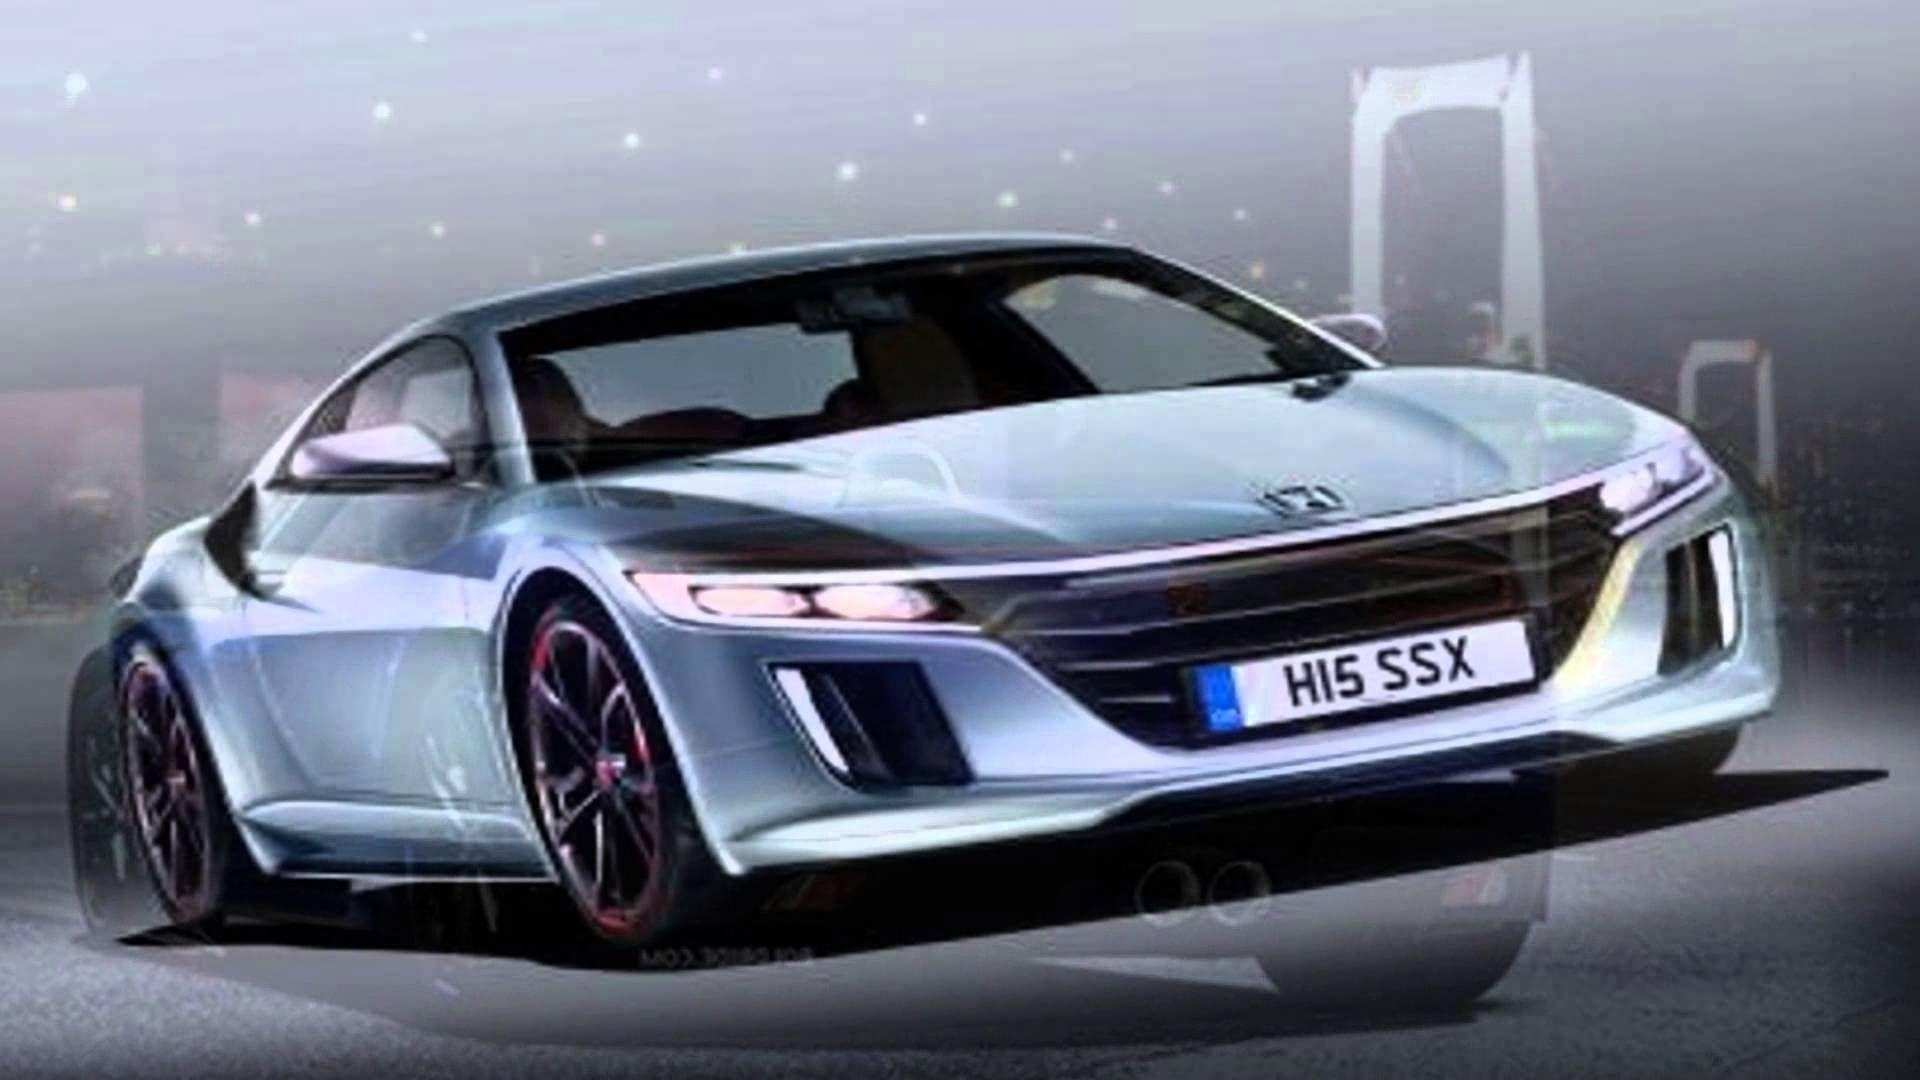 40 All New 2019 Honda S2000And Configurations with 2019 Honda S2000And